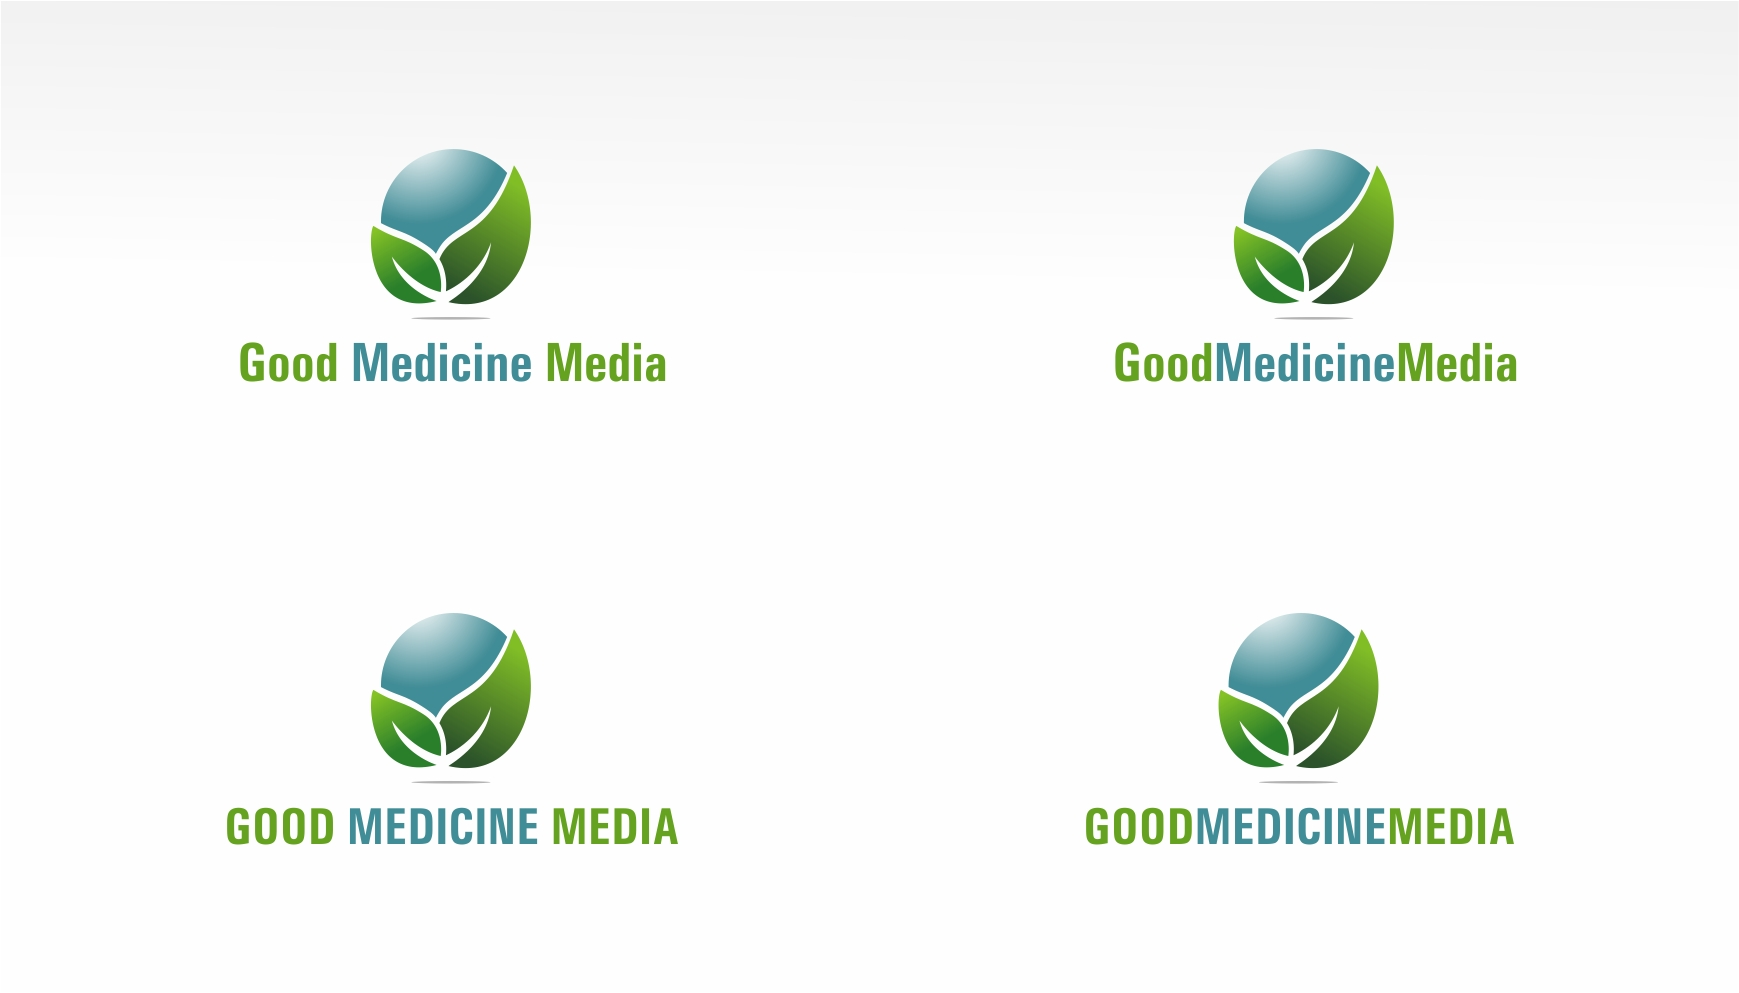 Logo Design by haidu - Entry No. 235 in the Logo Design Contest Good Medicine Media Logo Design.